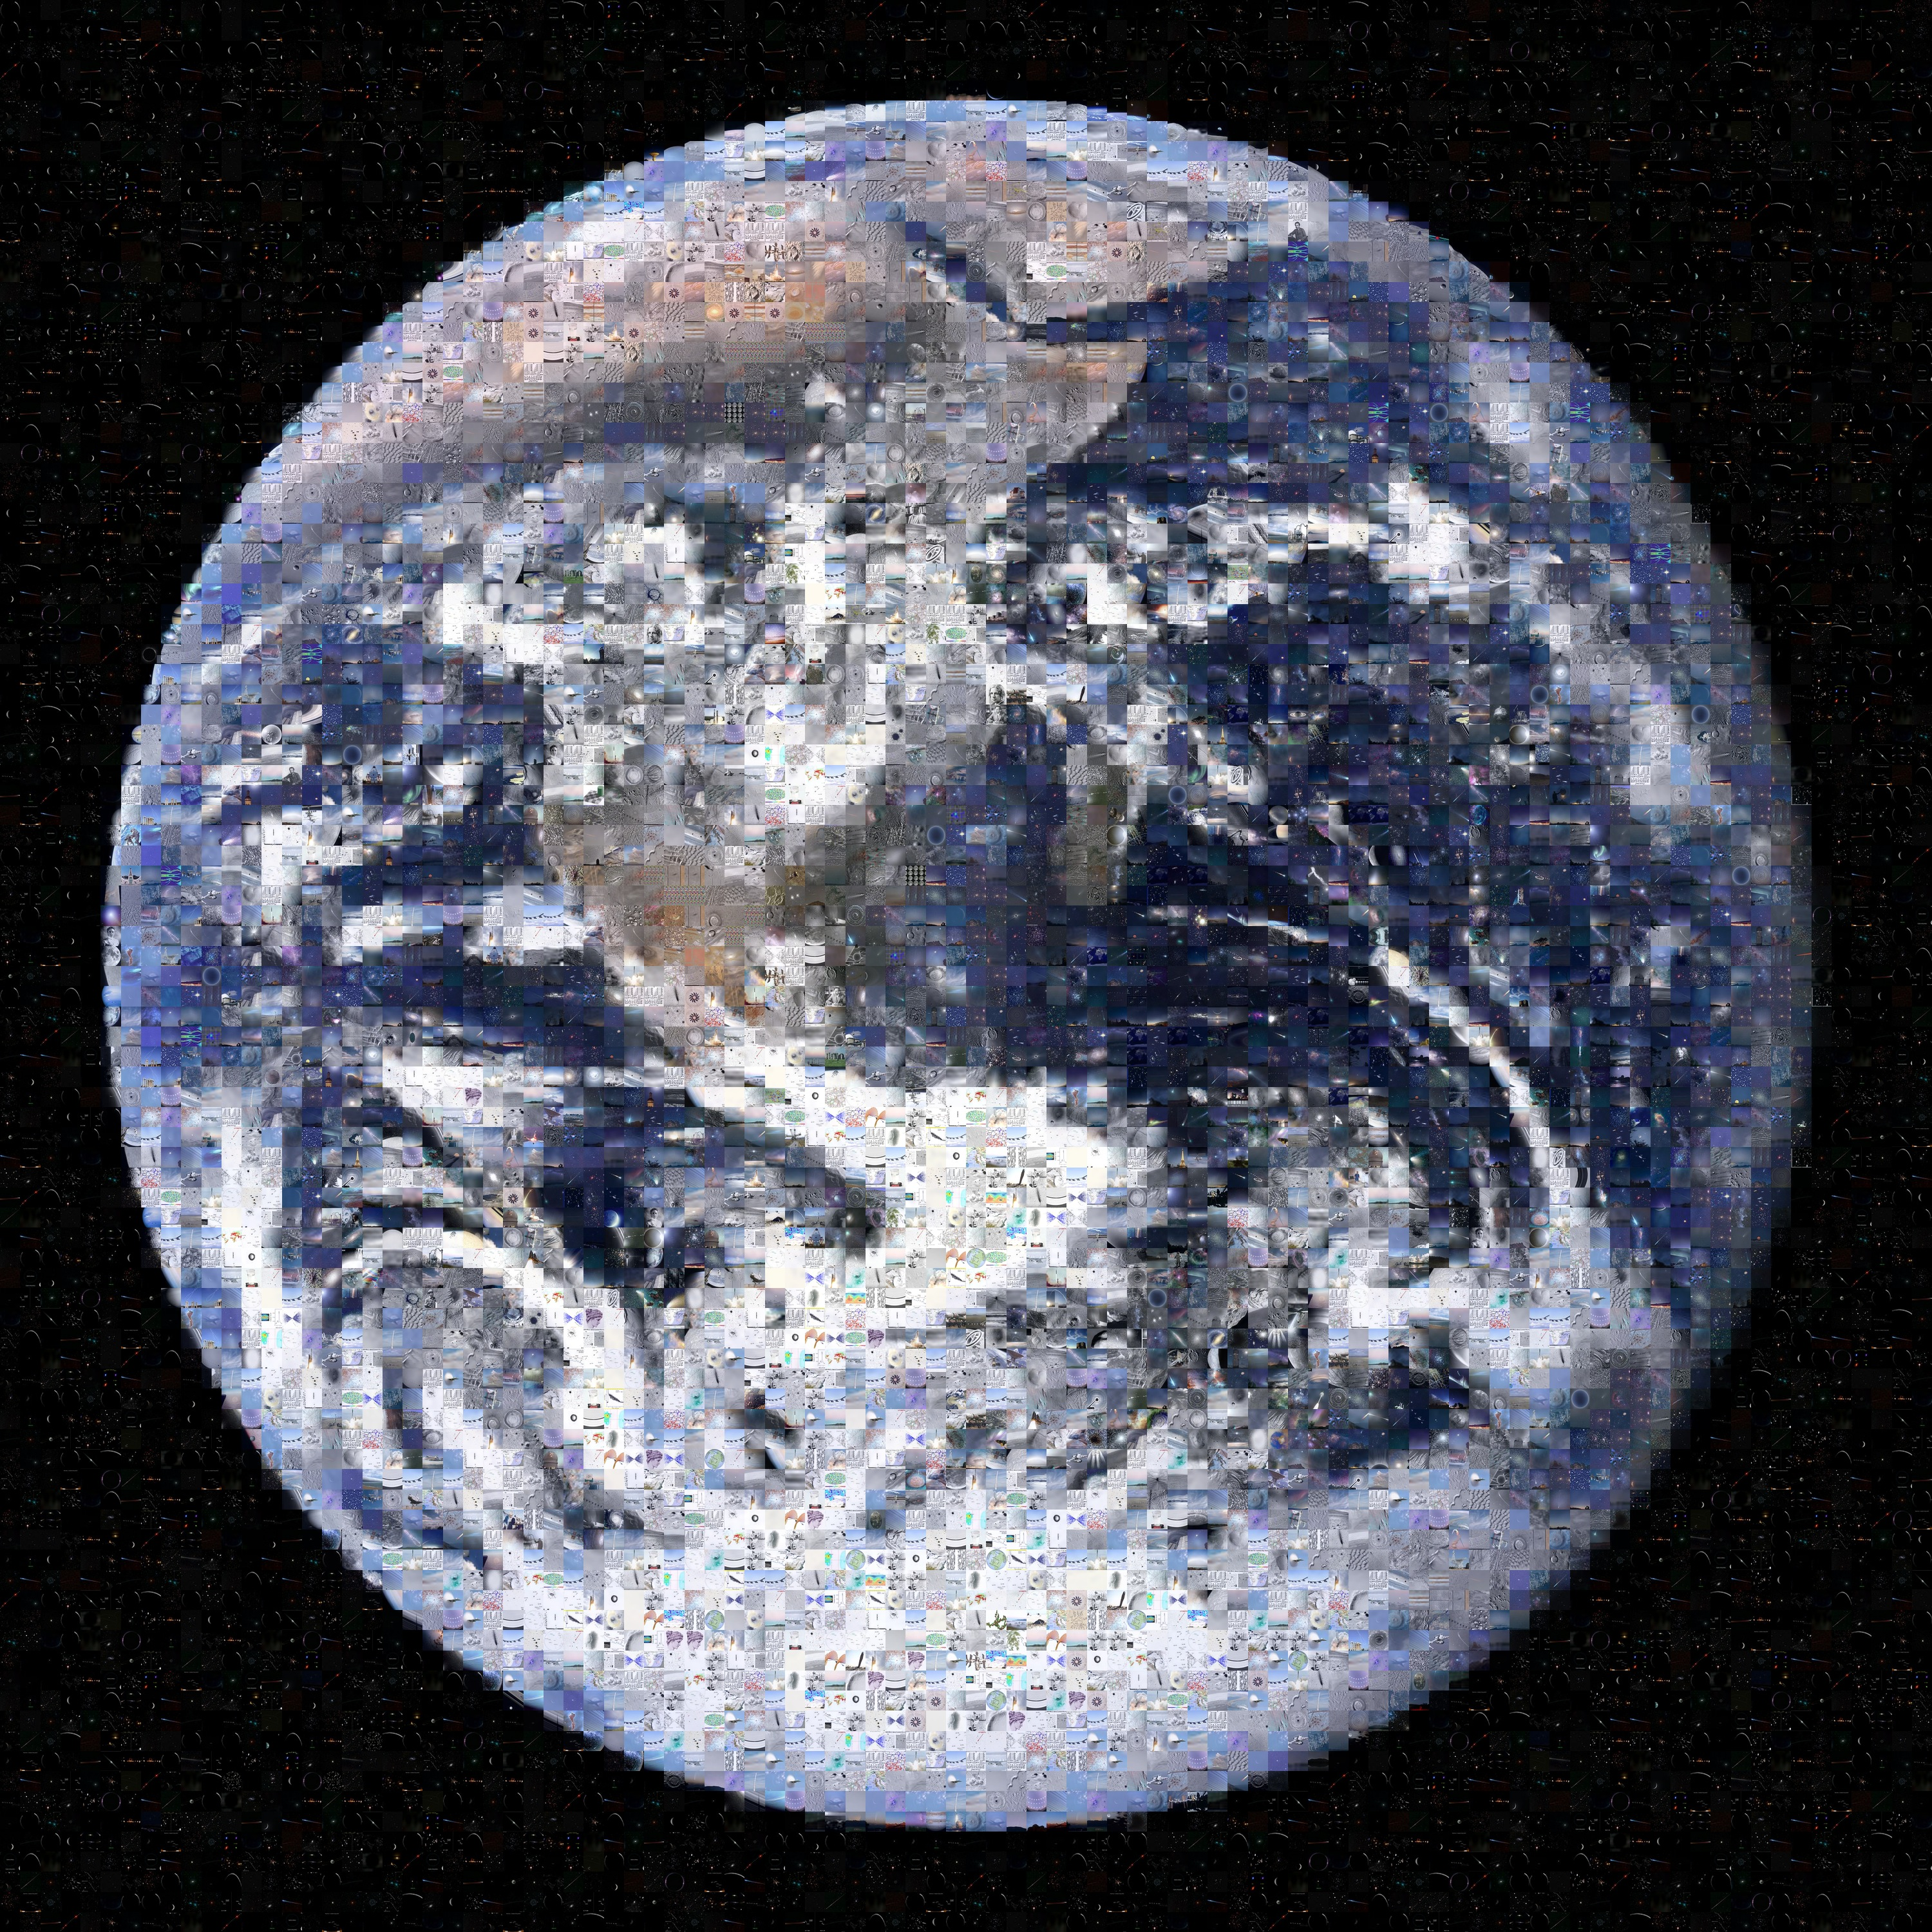 APOD: 2010 July 13 - Mosaic: Welcome to Planet Earth